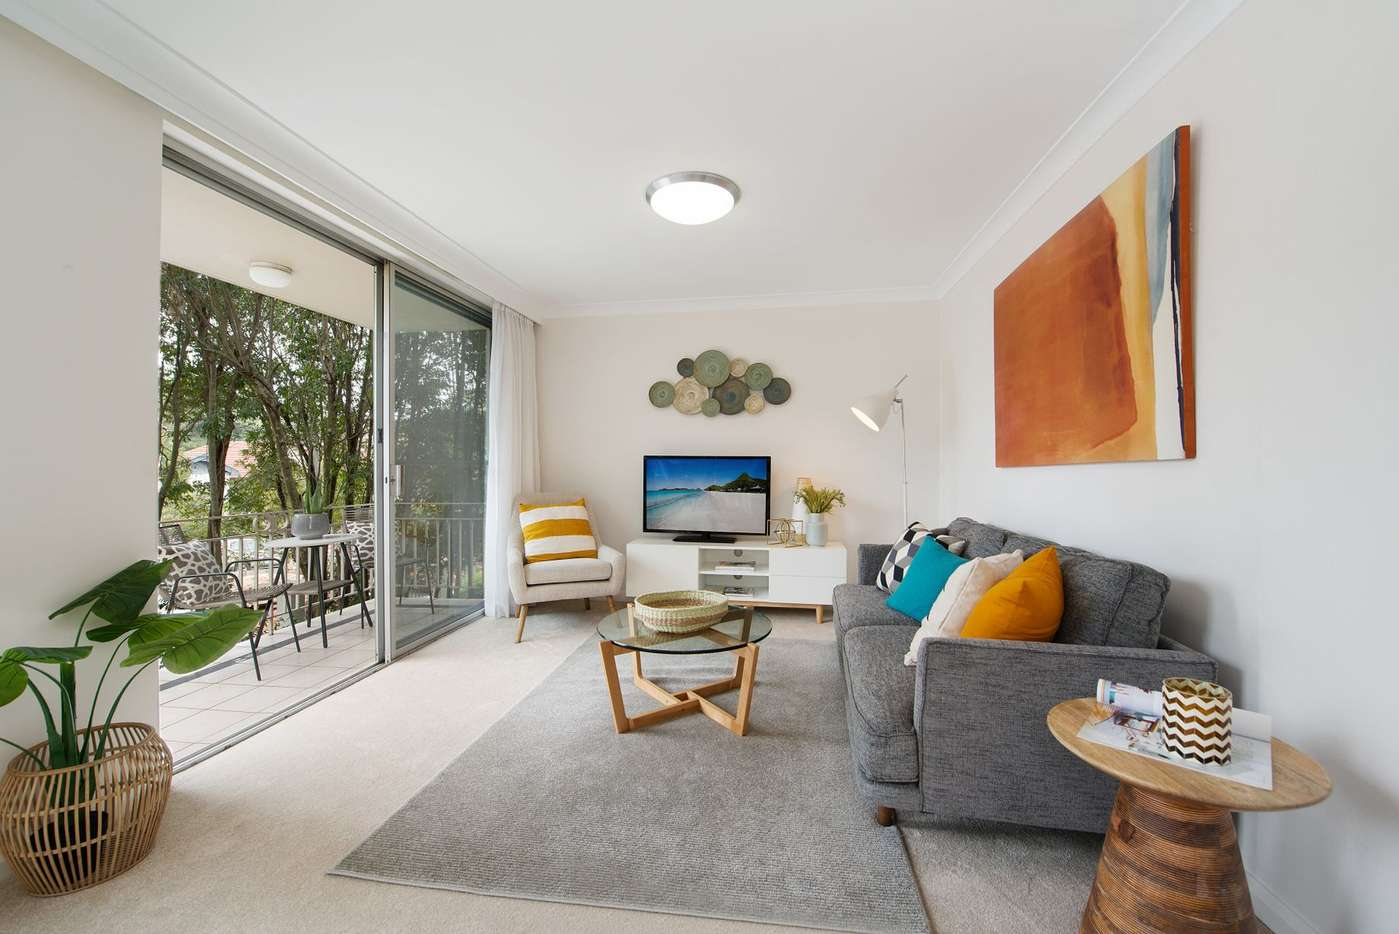 Main view of Homely apartment listing, 1/24 Moodie Street, Cammeray, NSW 2062